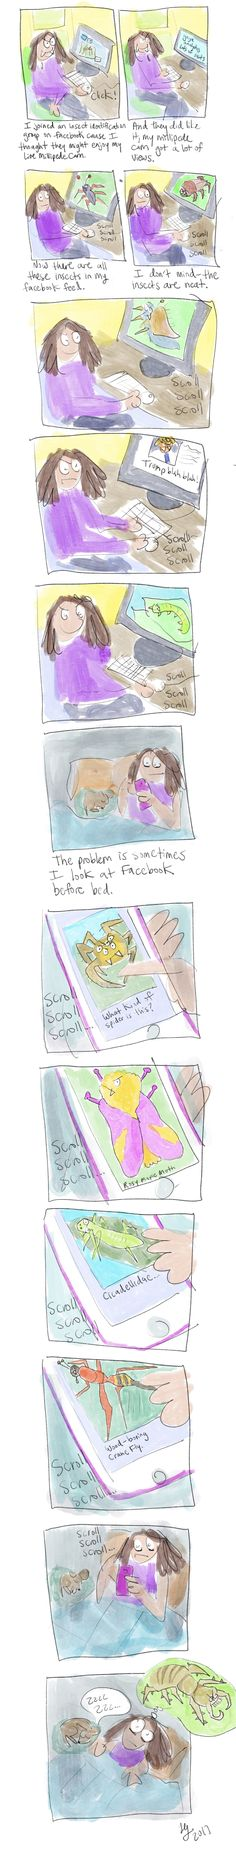 FB Feed Dominated by Insects - from my autobiographical web! Autobiographical Comics, Insects, Funny, Funny Parenting, Hilarious, Fun, Humor